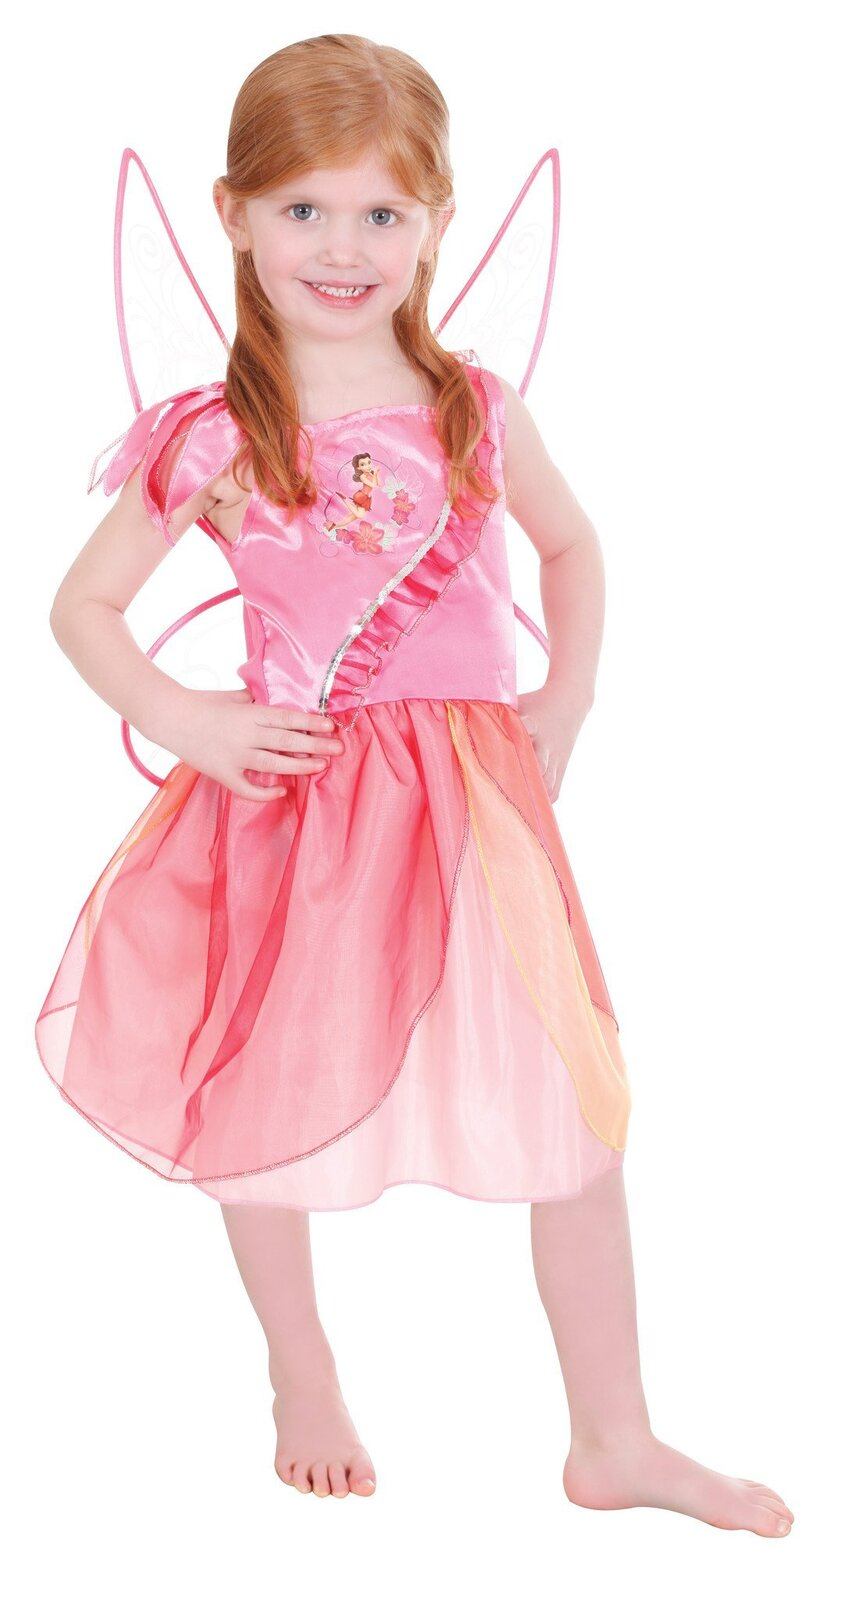 Rosetta Pirate Deluxe Fairy Child Costume - Buy Online Only